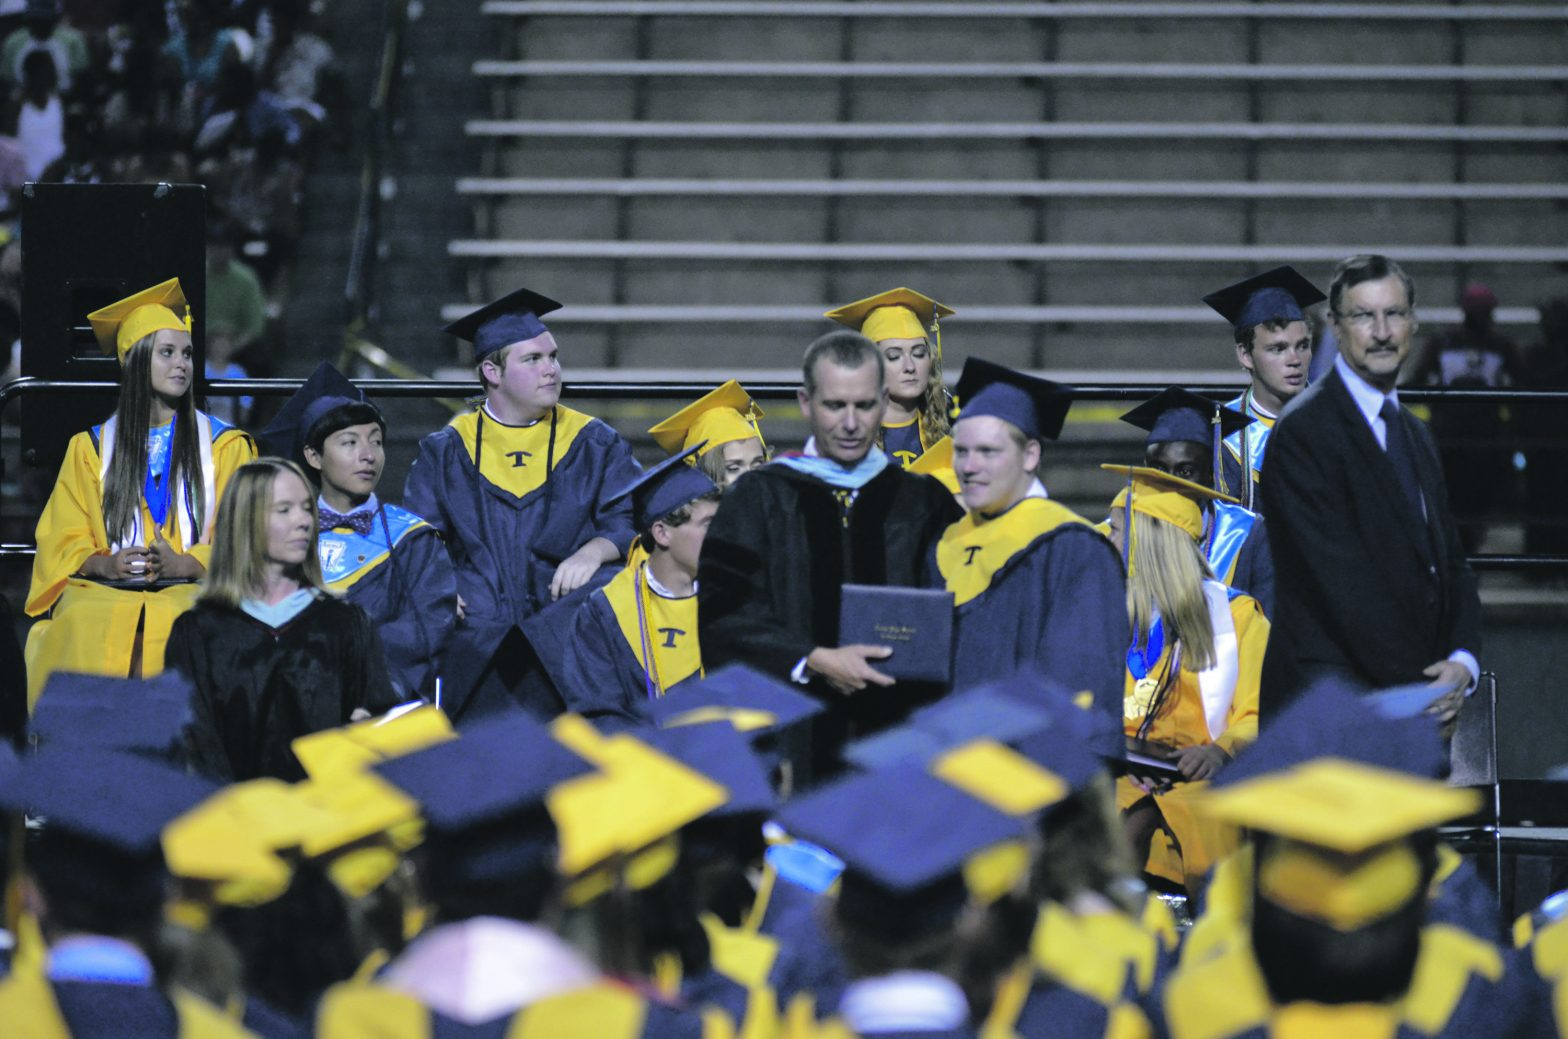 Troup High  Student Austin  Noles Beats  The Odds For  Graduation